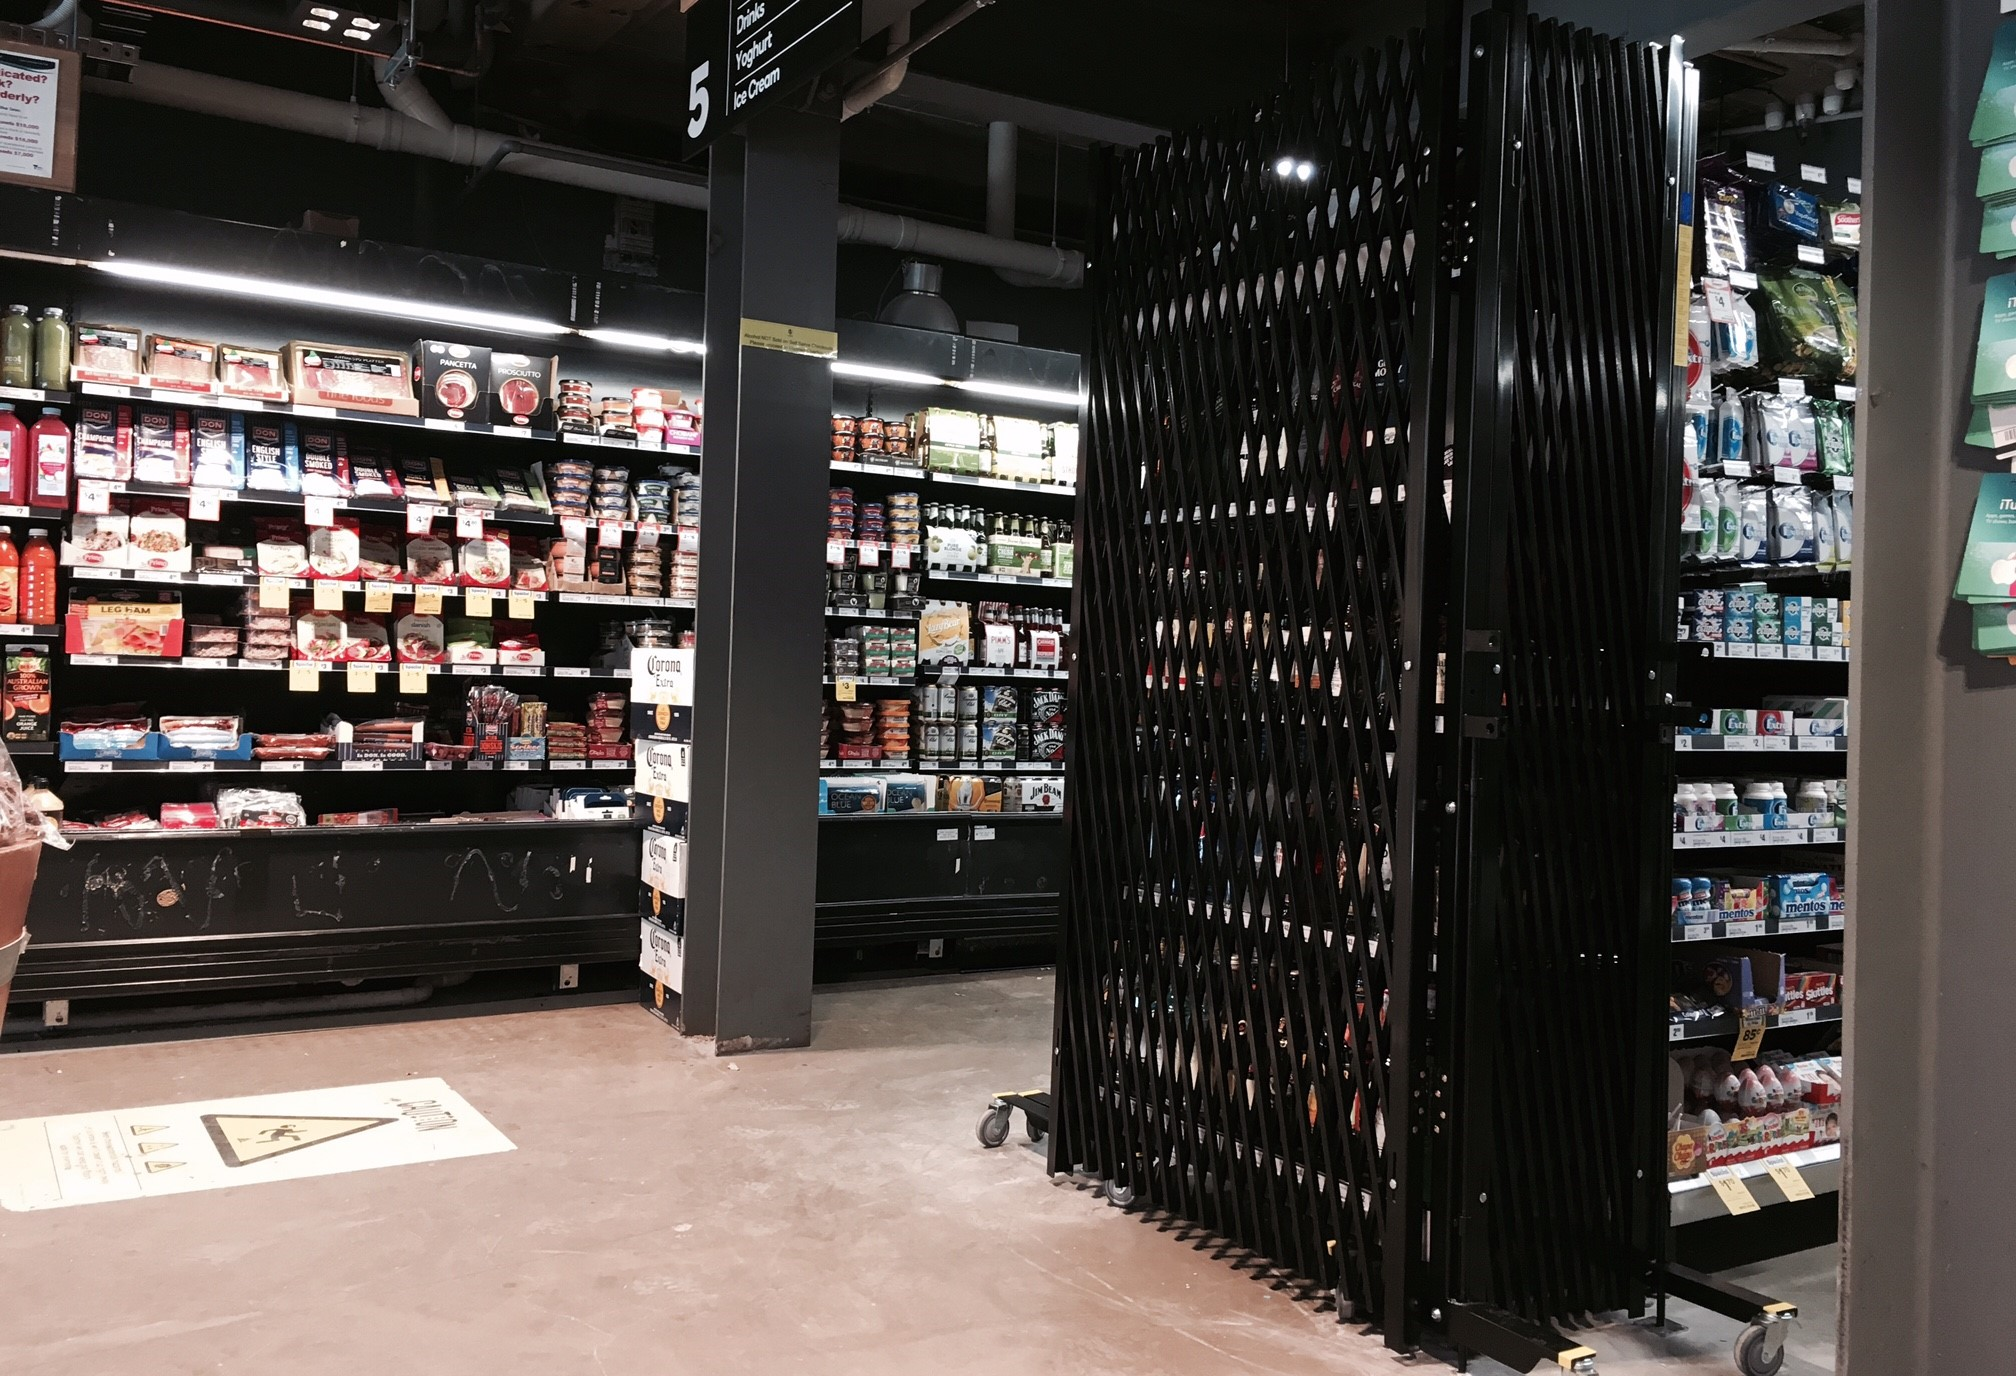 Tiny Home Designs: PORTABLE EXPANDING BARRICADES FOR WOOLWORTHS METRO STORES